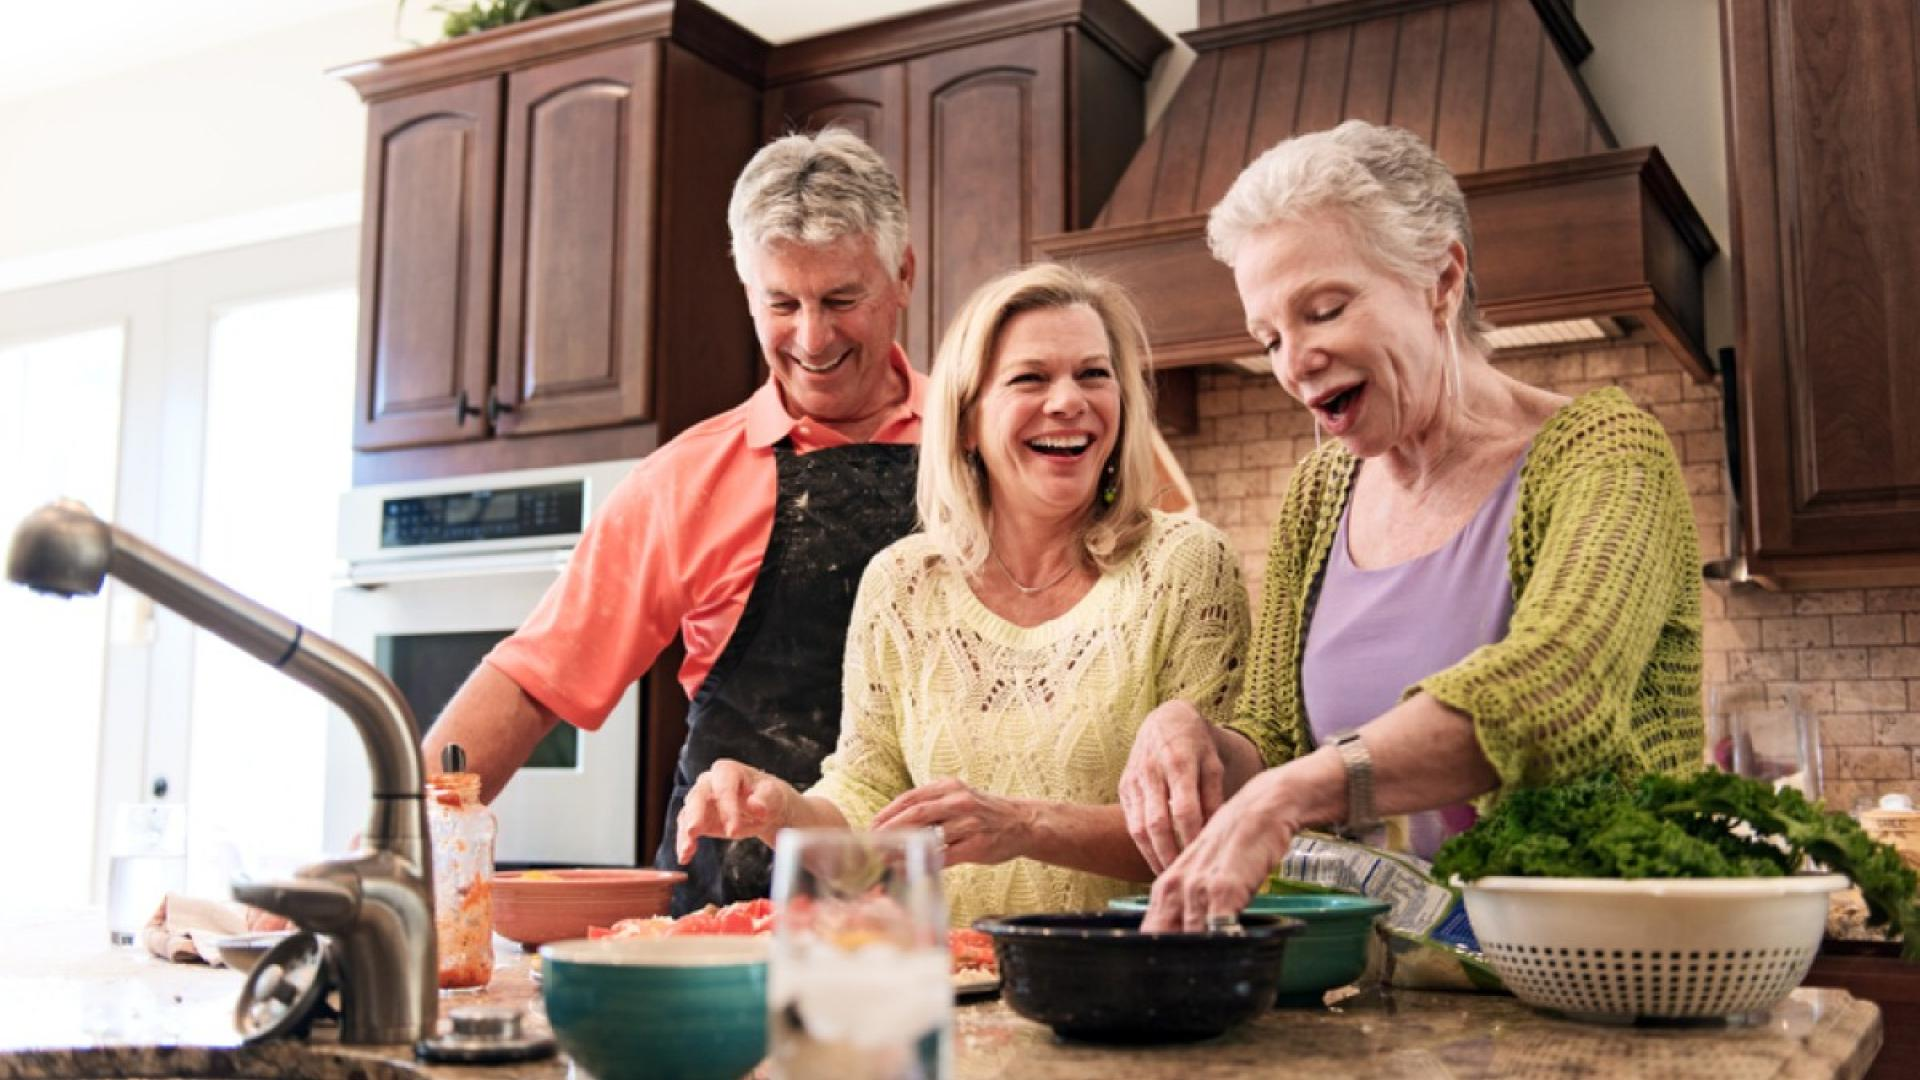 'Back to basics' cooking having positive impact on diet